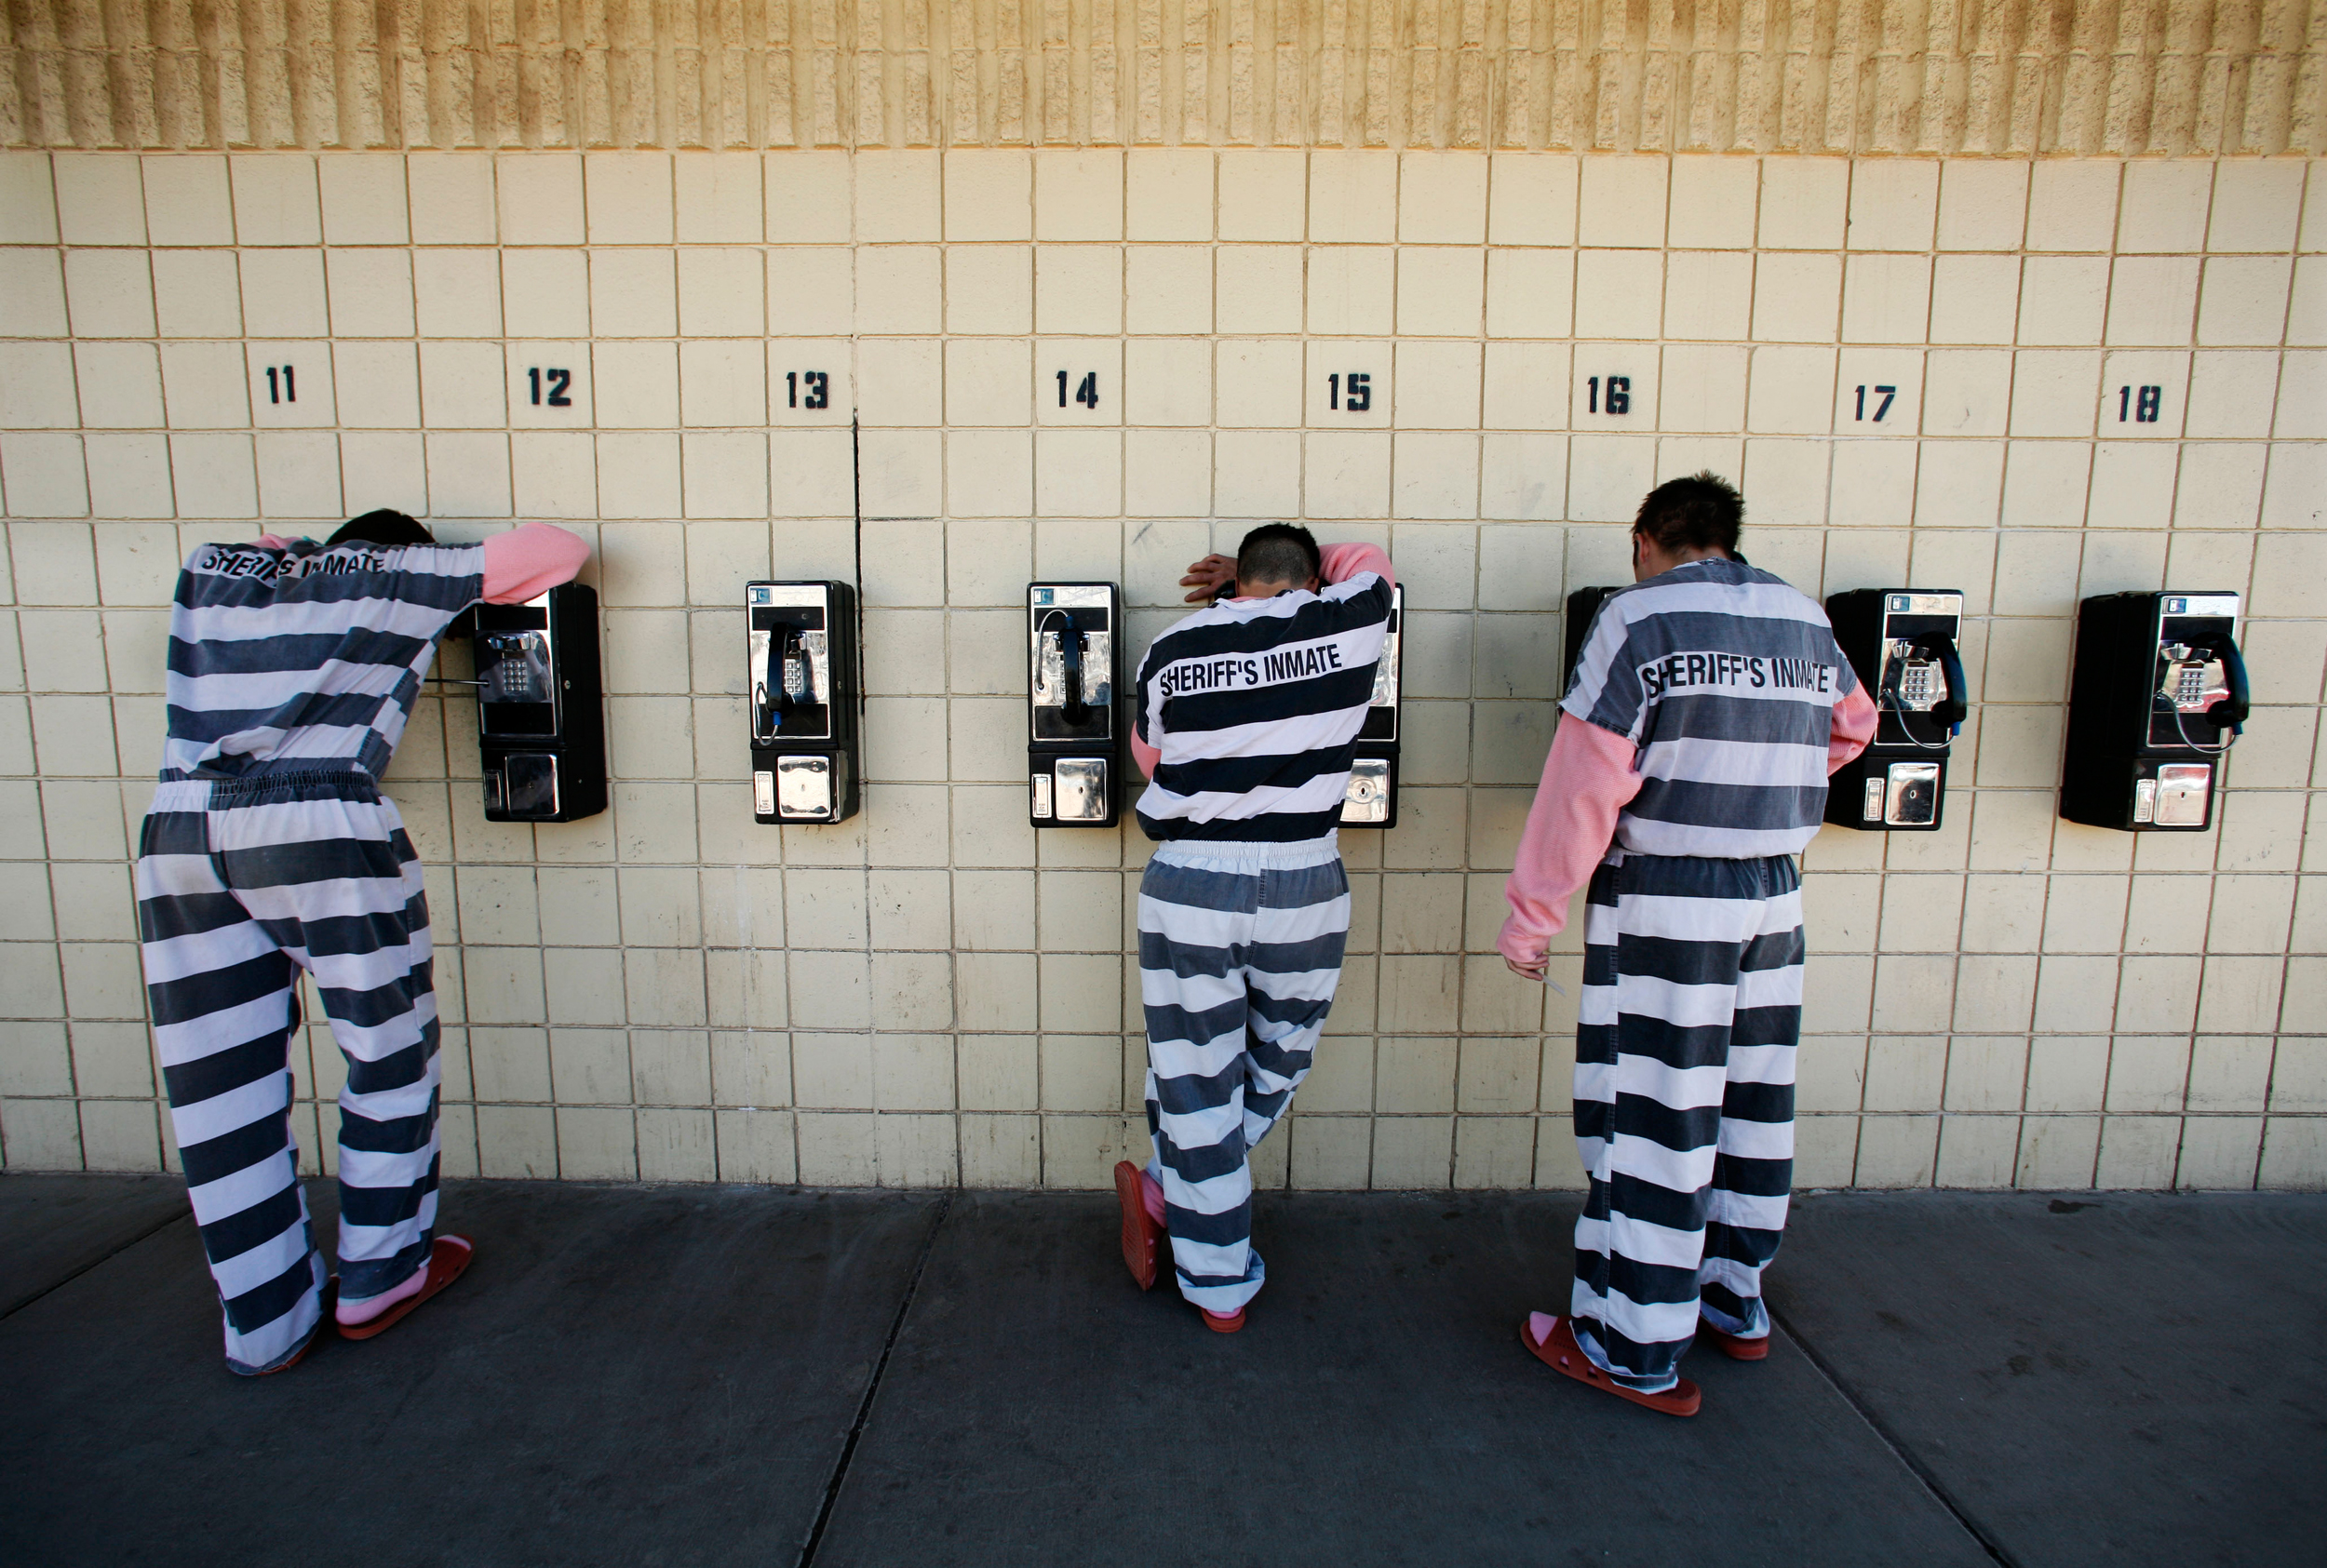 Prison inmate calling companies -  Huge Step Fcc Slashes Costs Of Prison Phone Calls Nbc News